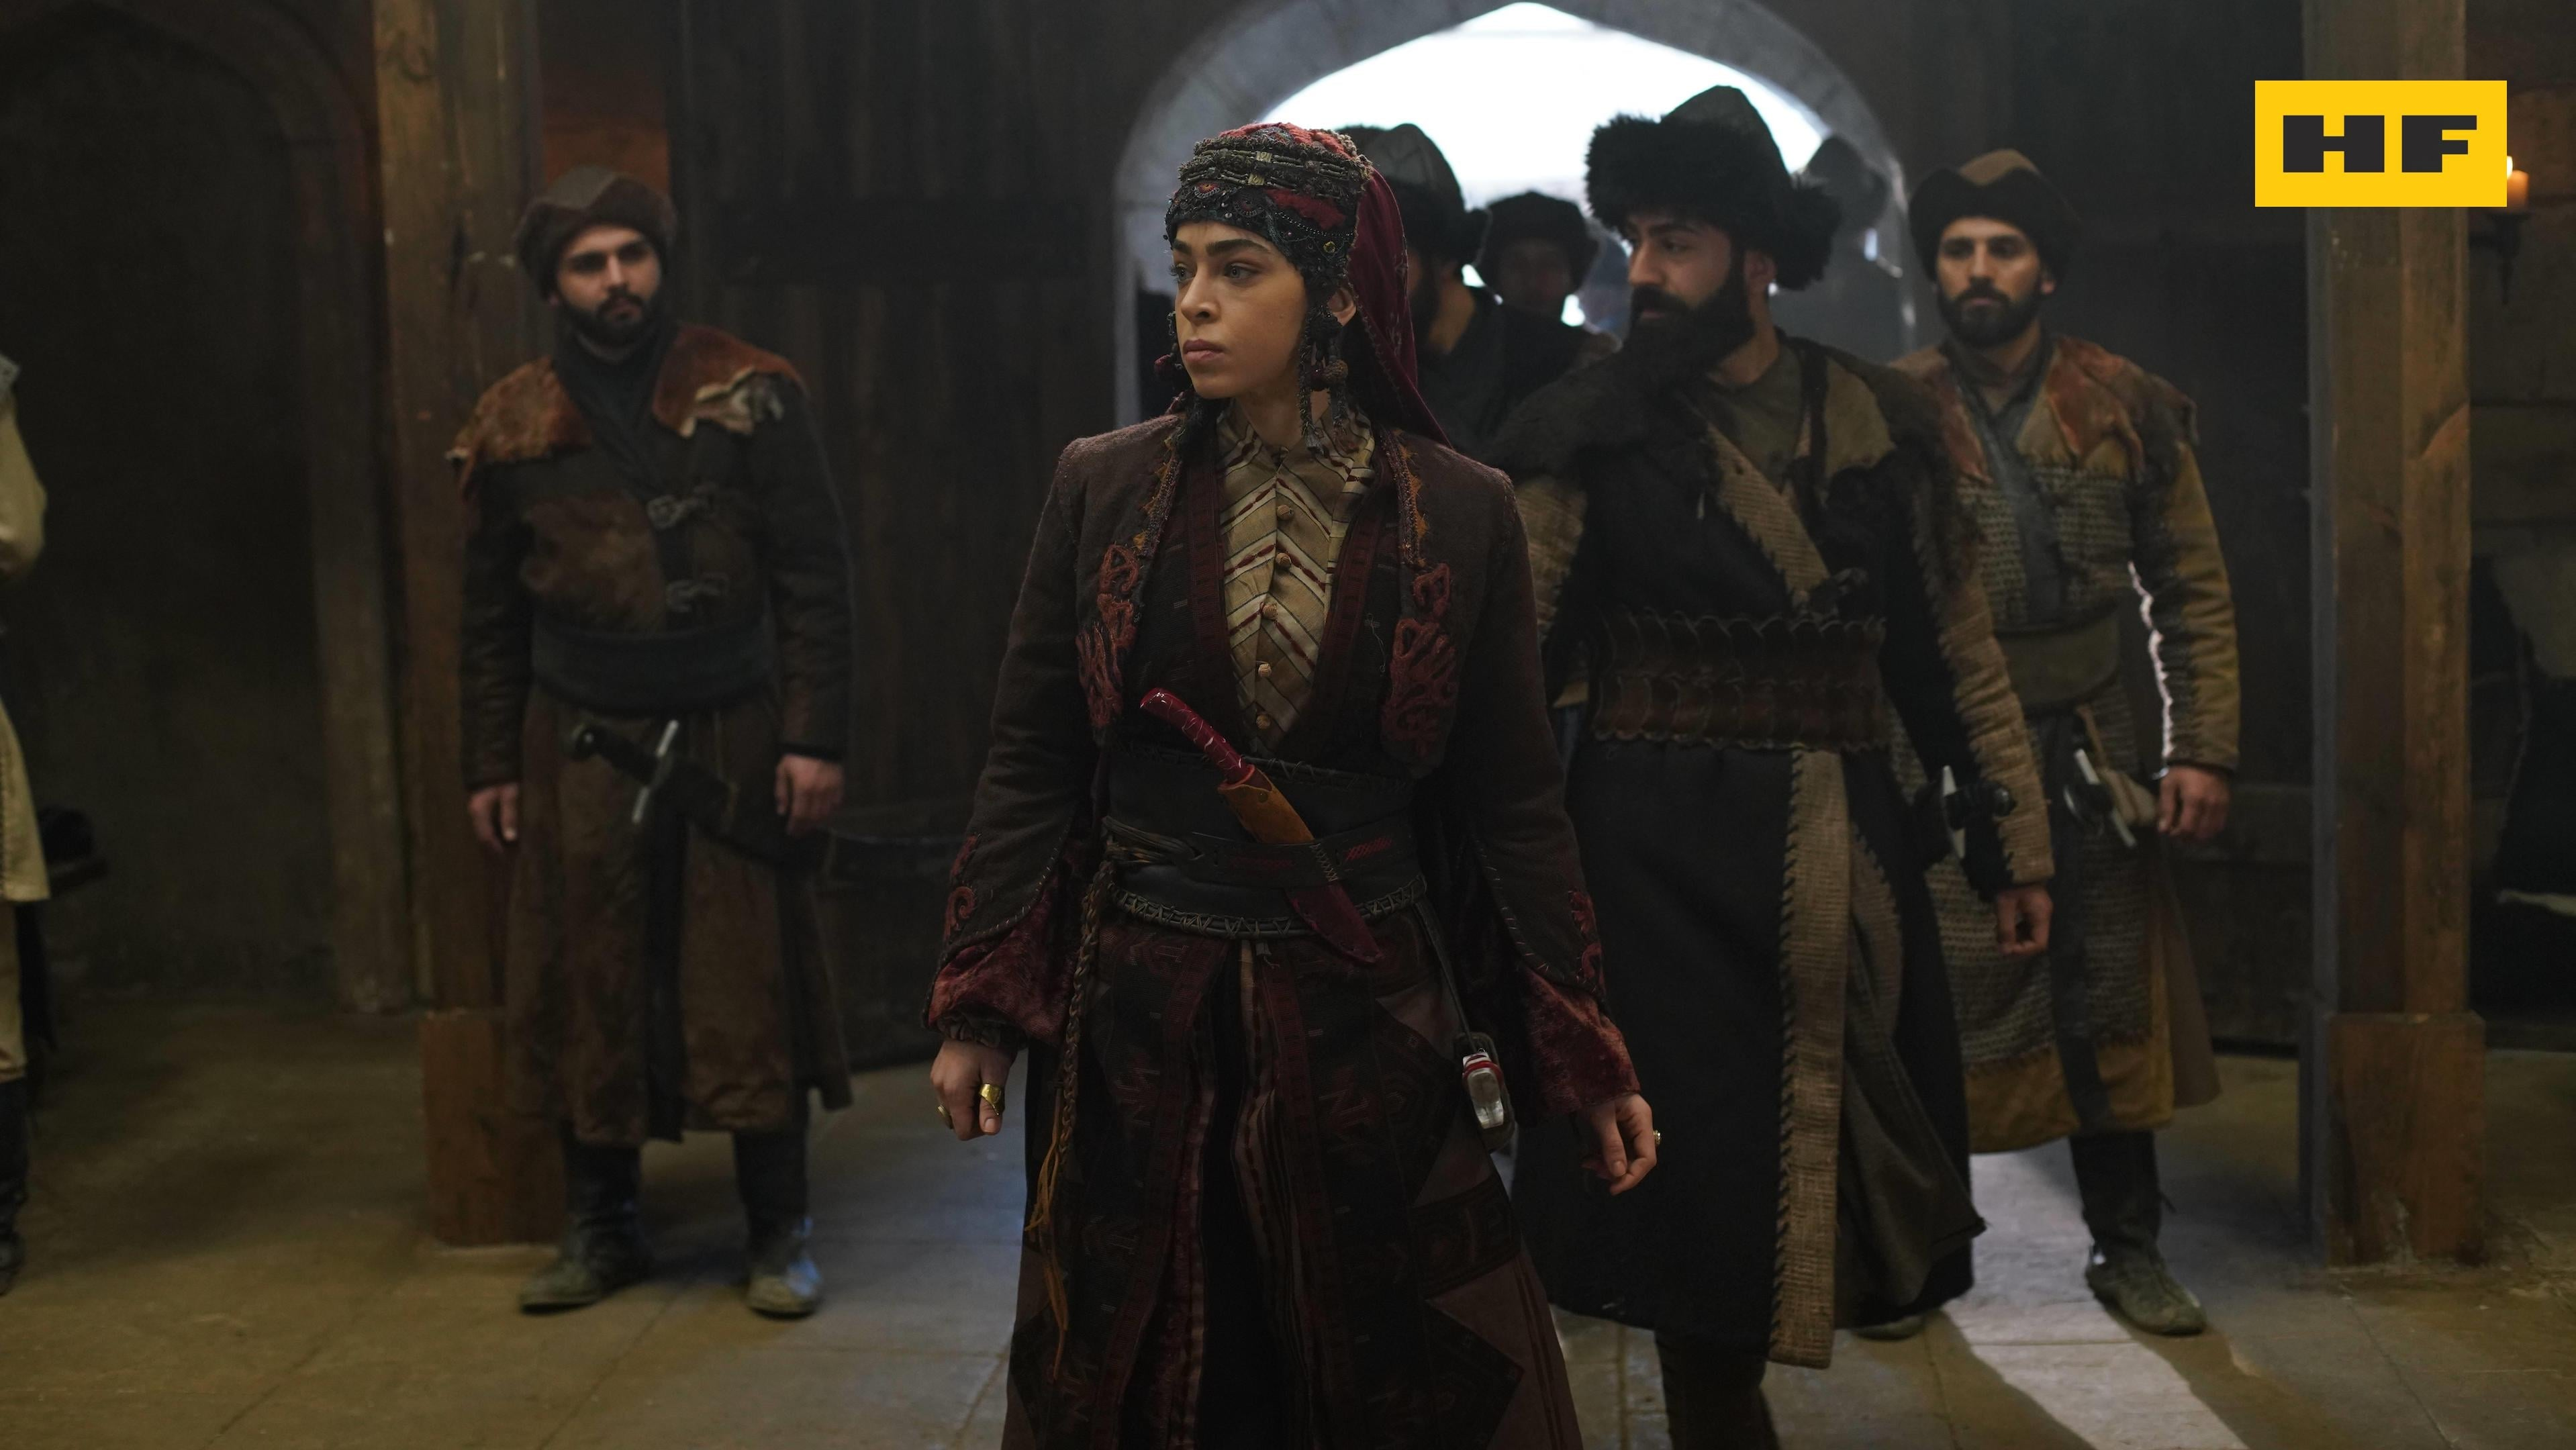 Dirilis Ertugrul season 5 Episode 9